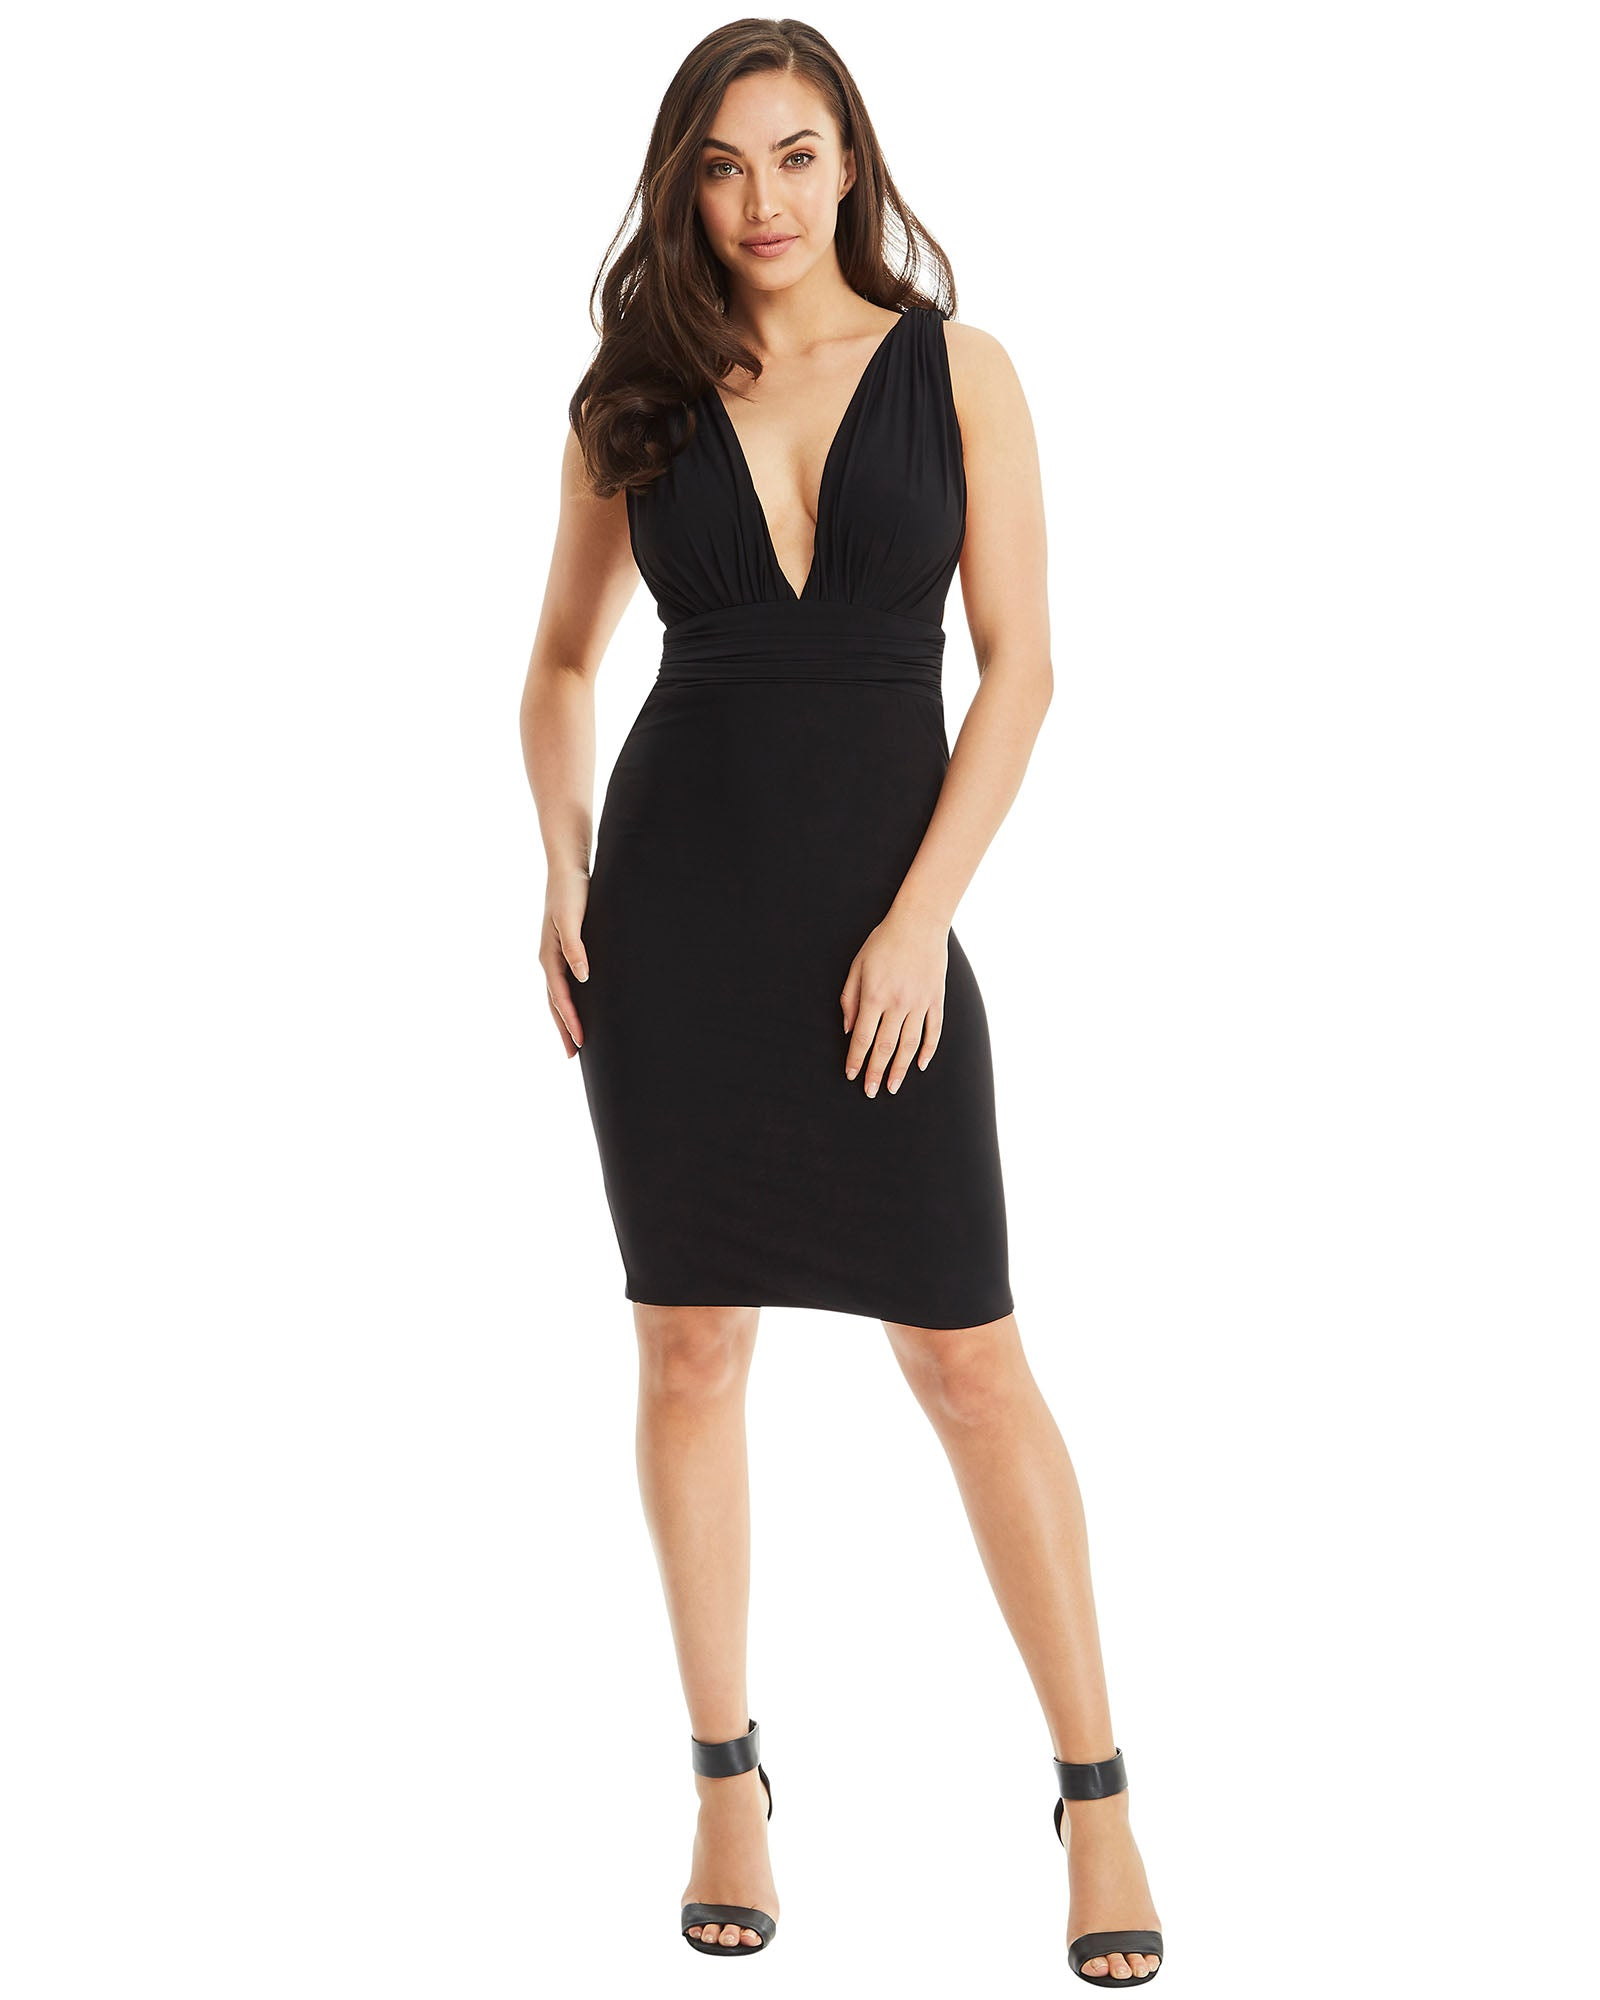 SKIVA cocktail dress black stretch fabric v neck open back shoulder straps zip pull on knee length midi party cocktail evening